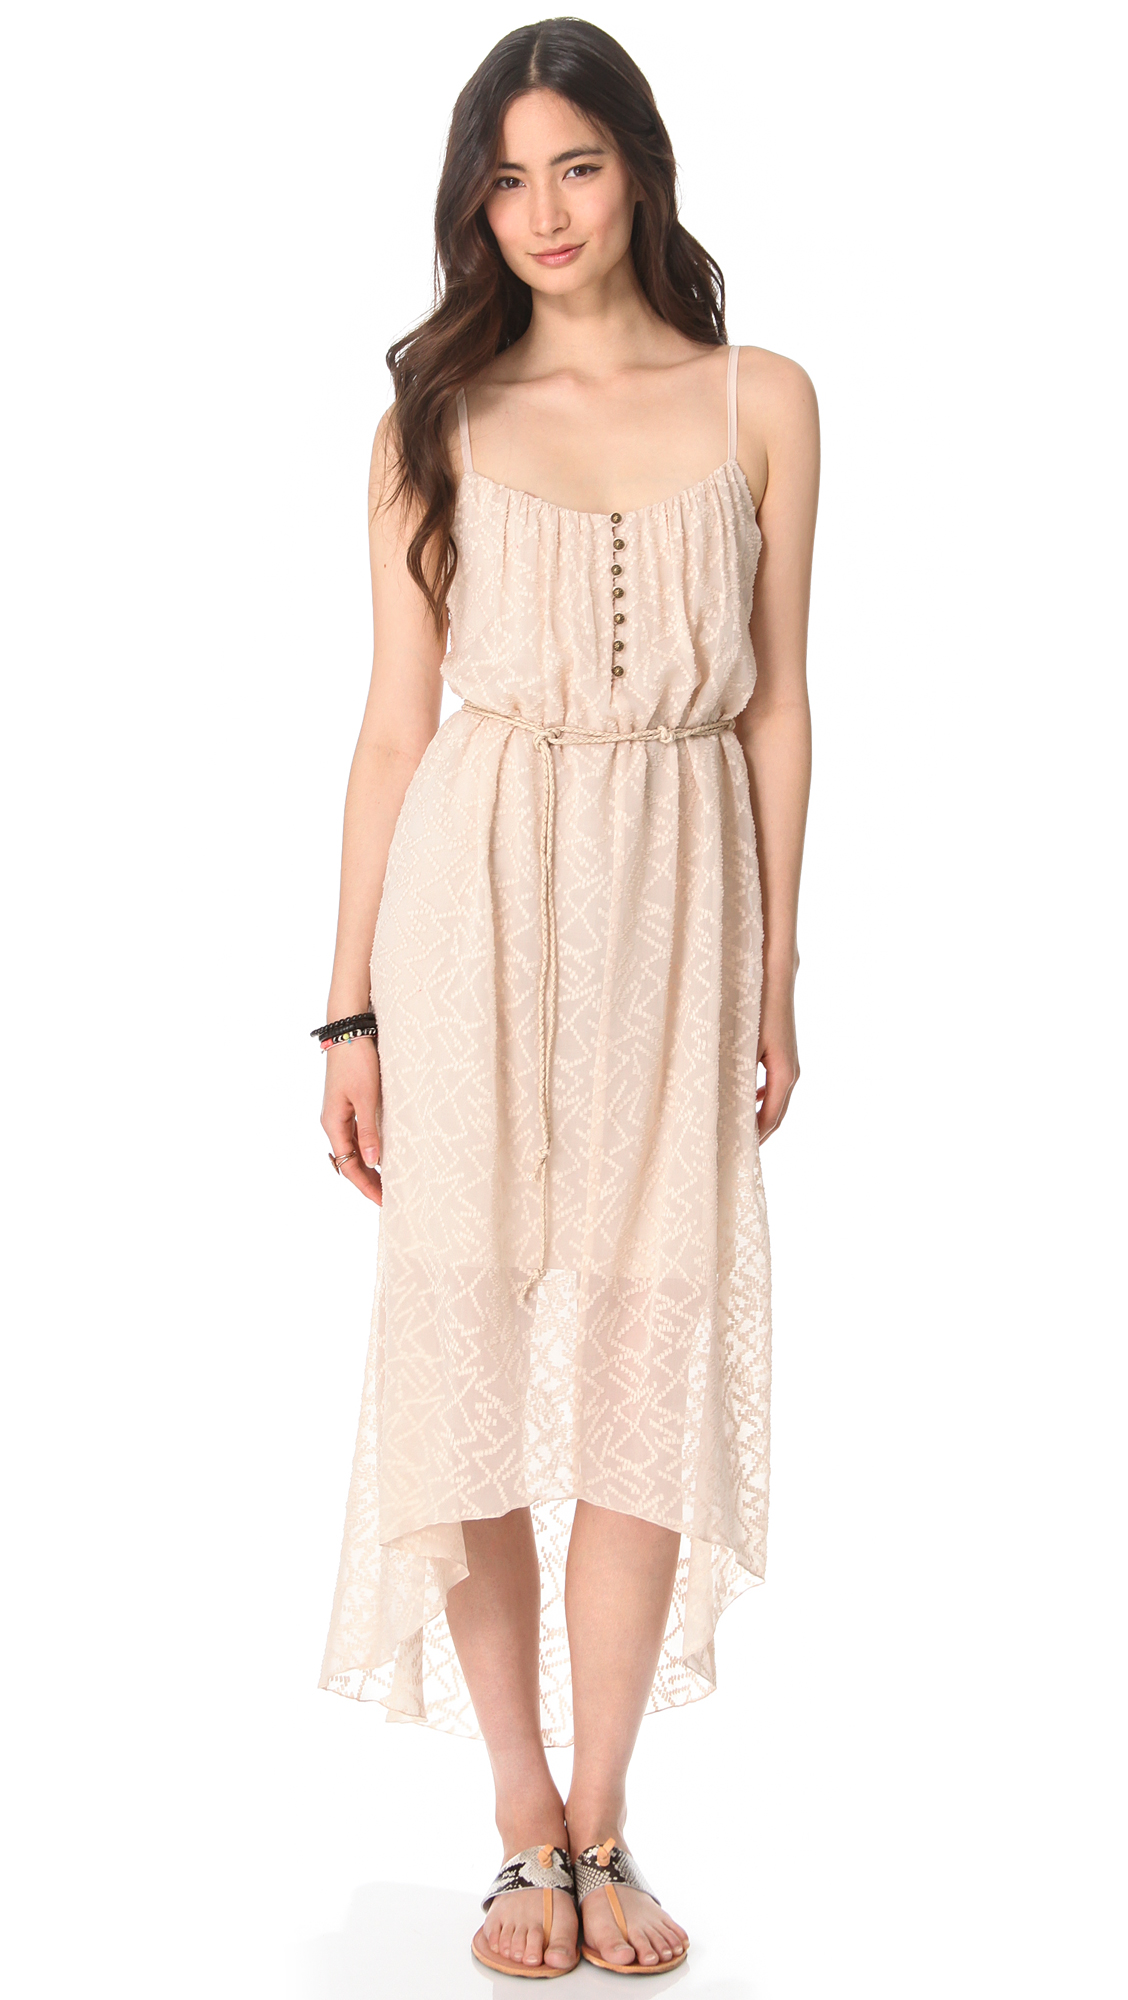 twelfth cynthia vincent belted high low dress in